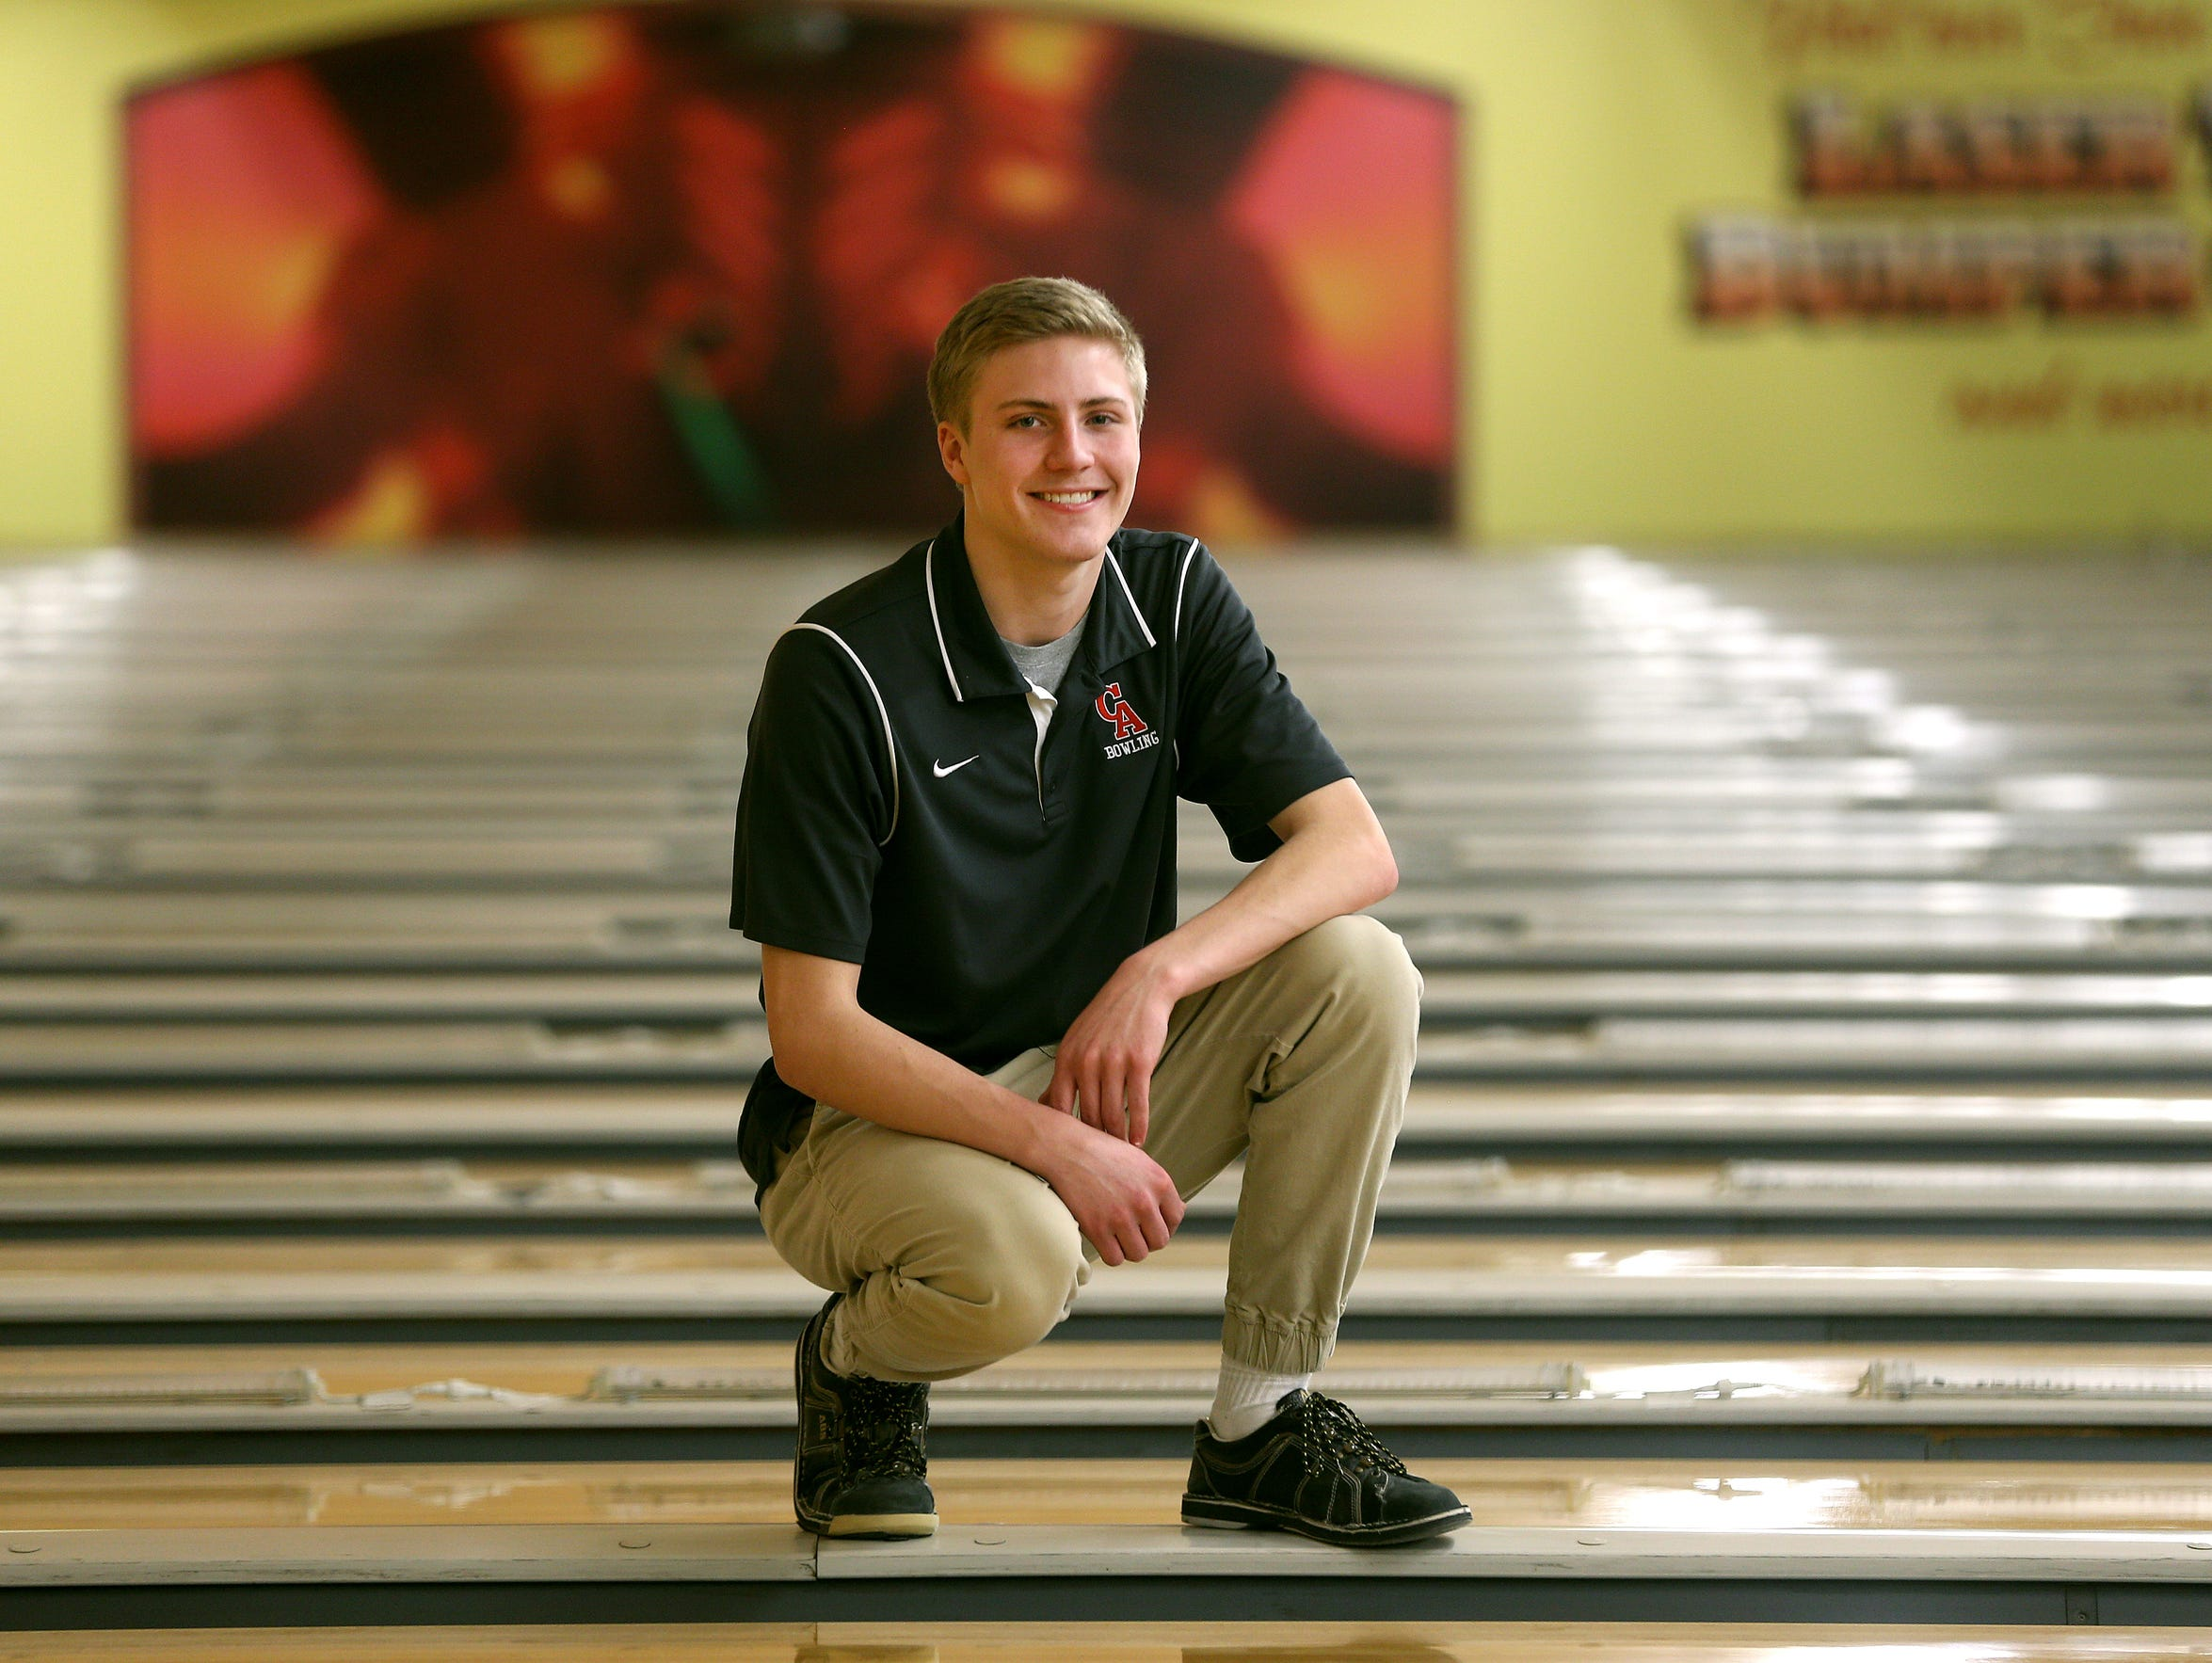 AGR Bowler of the Year, Canandaigua's Tristen Briggs.